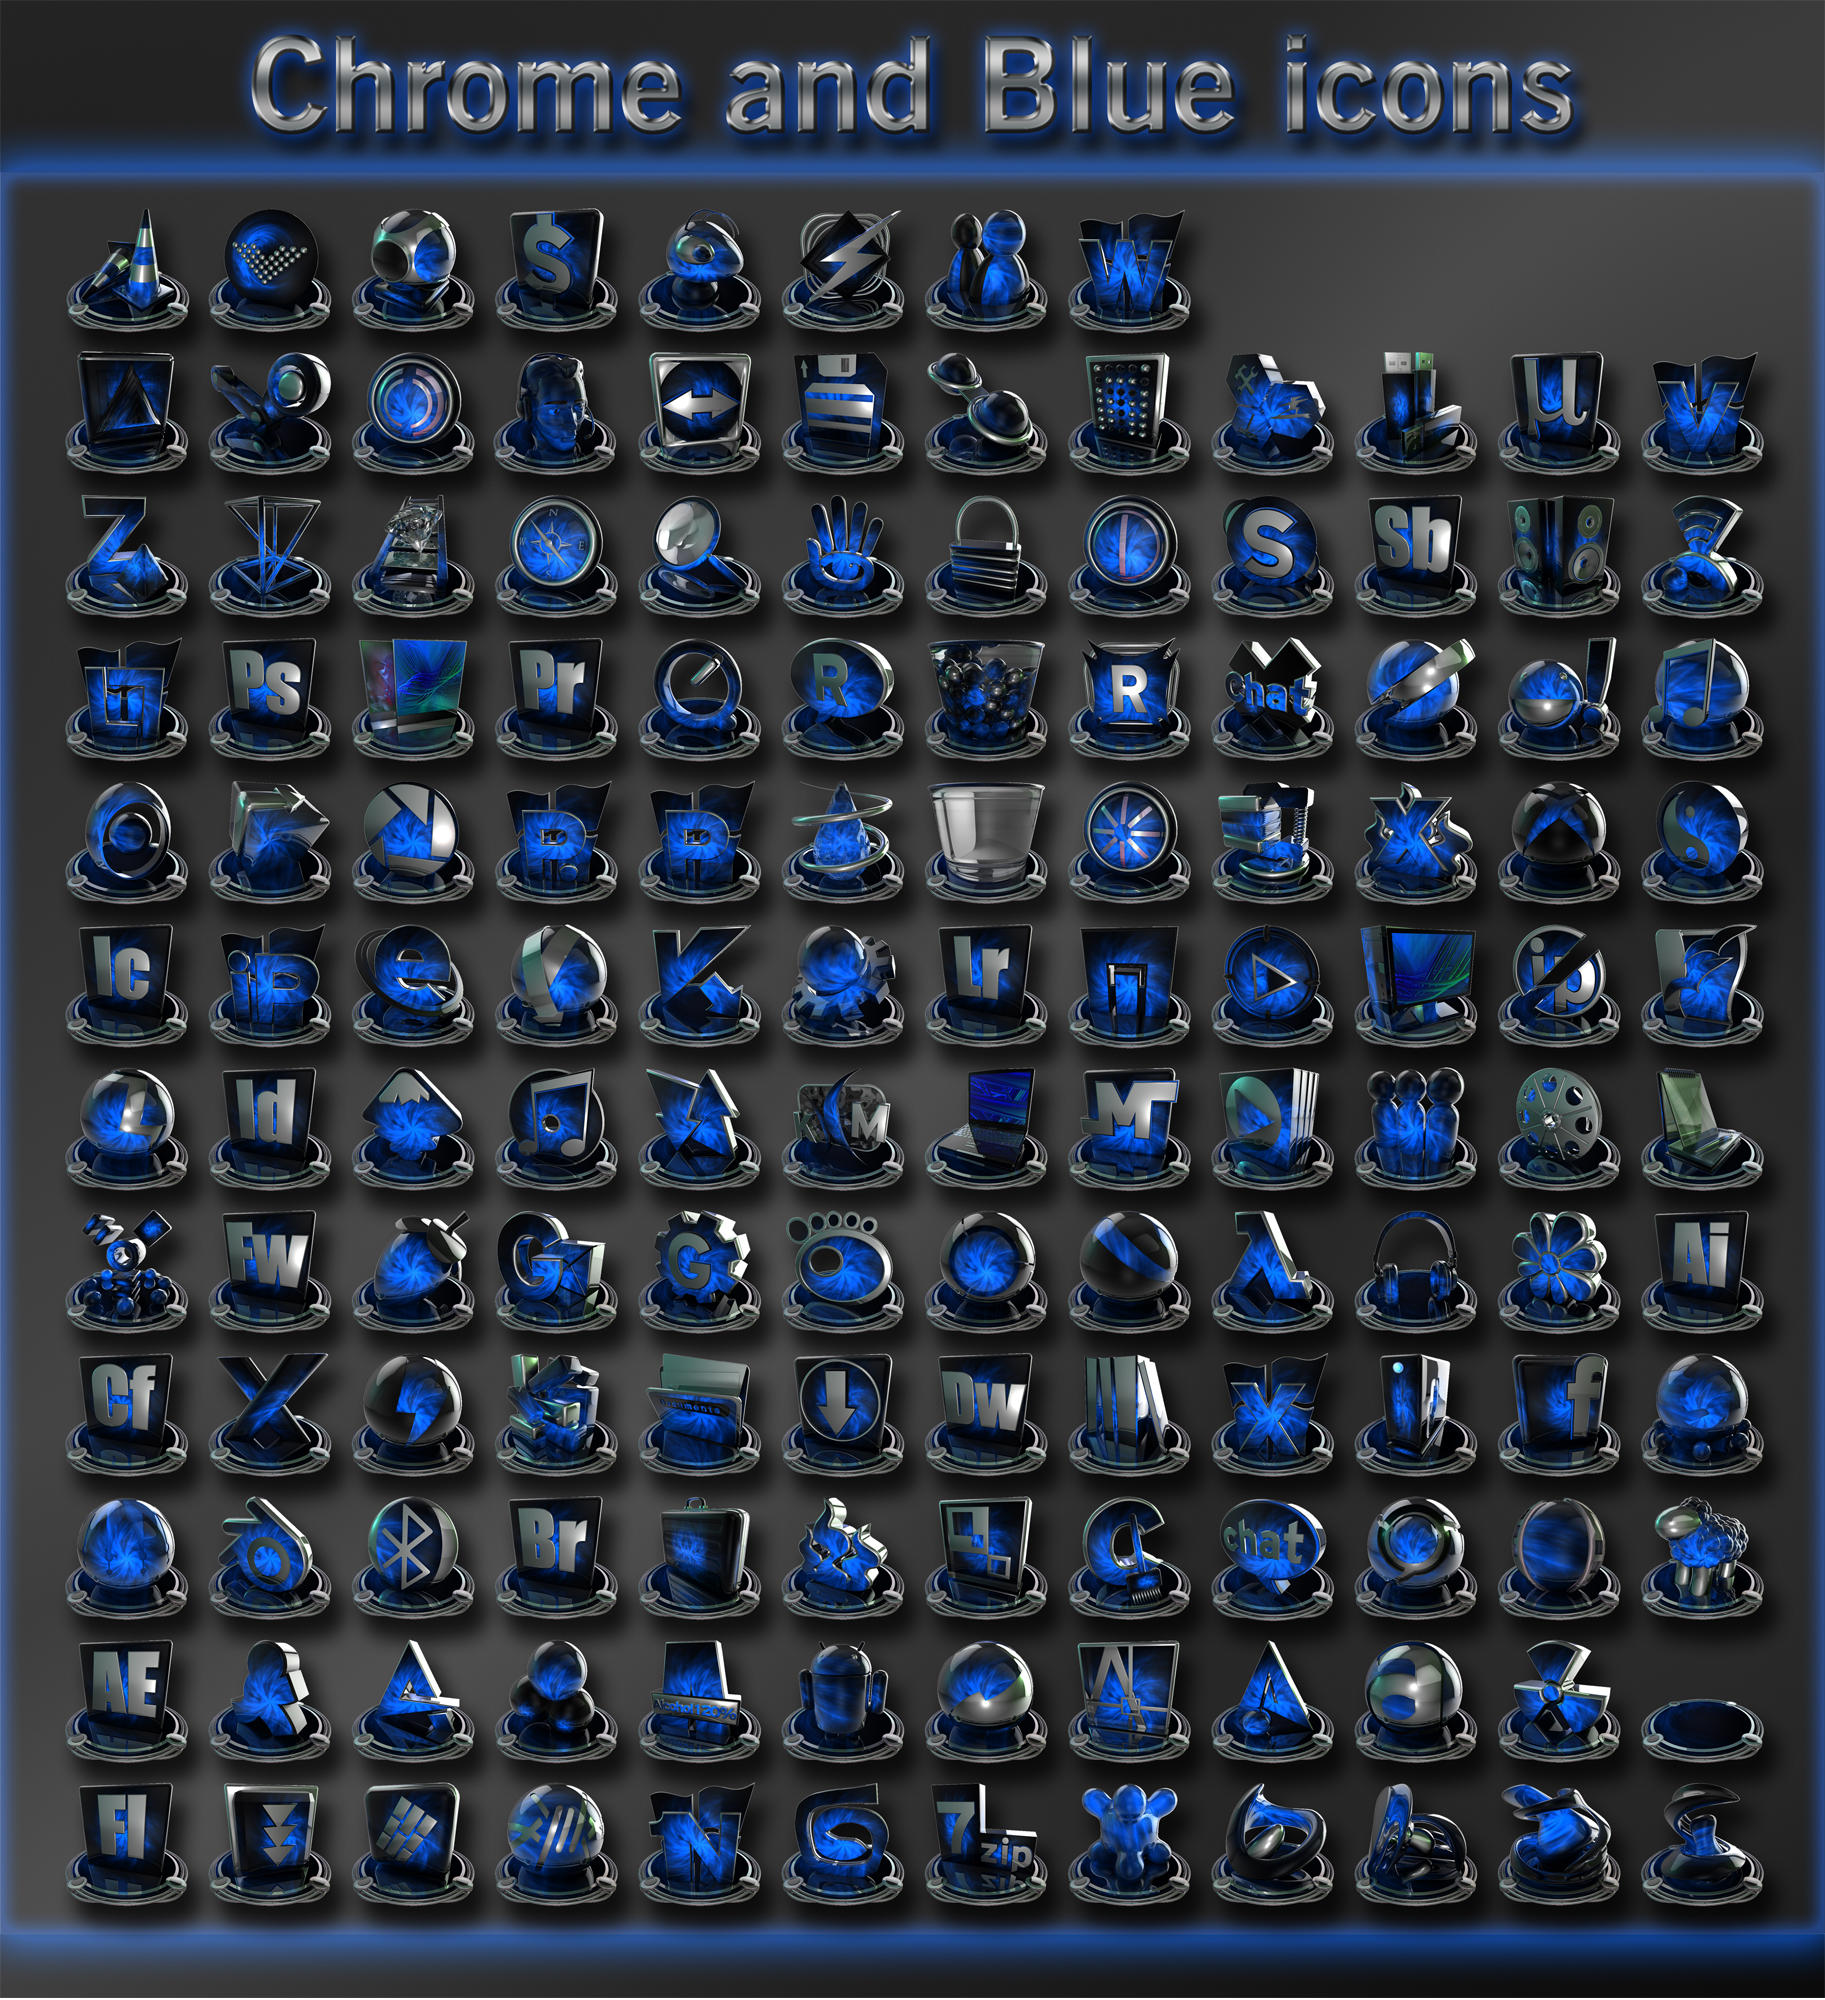 chrome and blue icons by xylomon